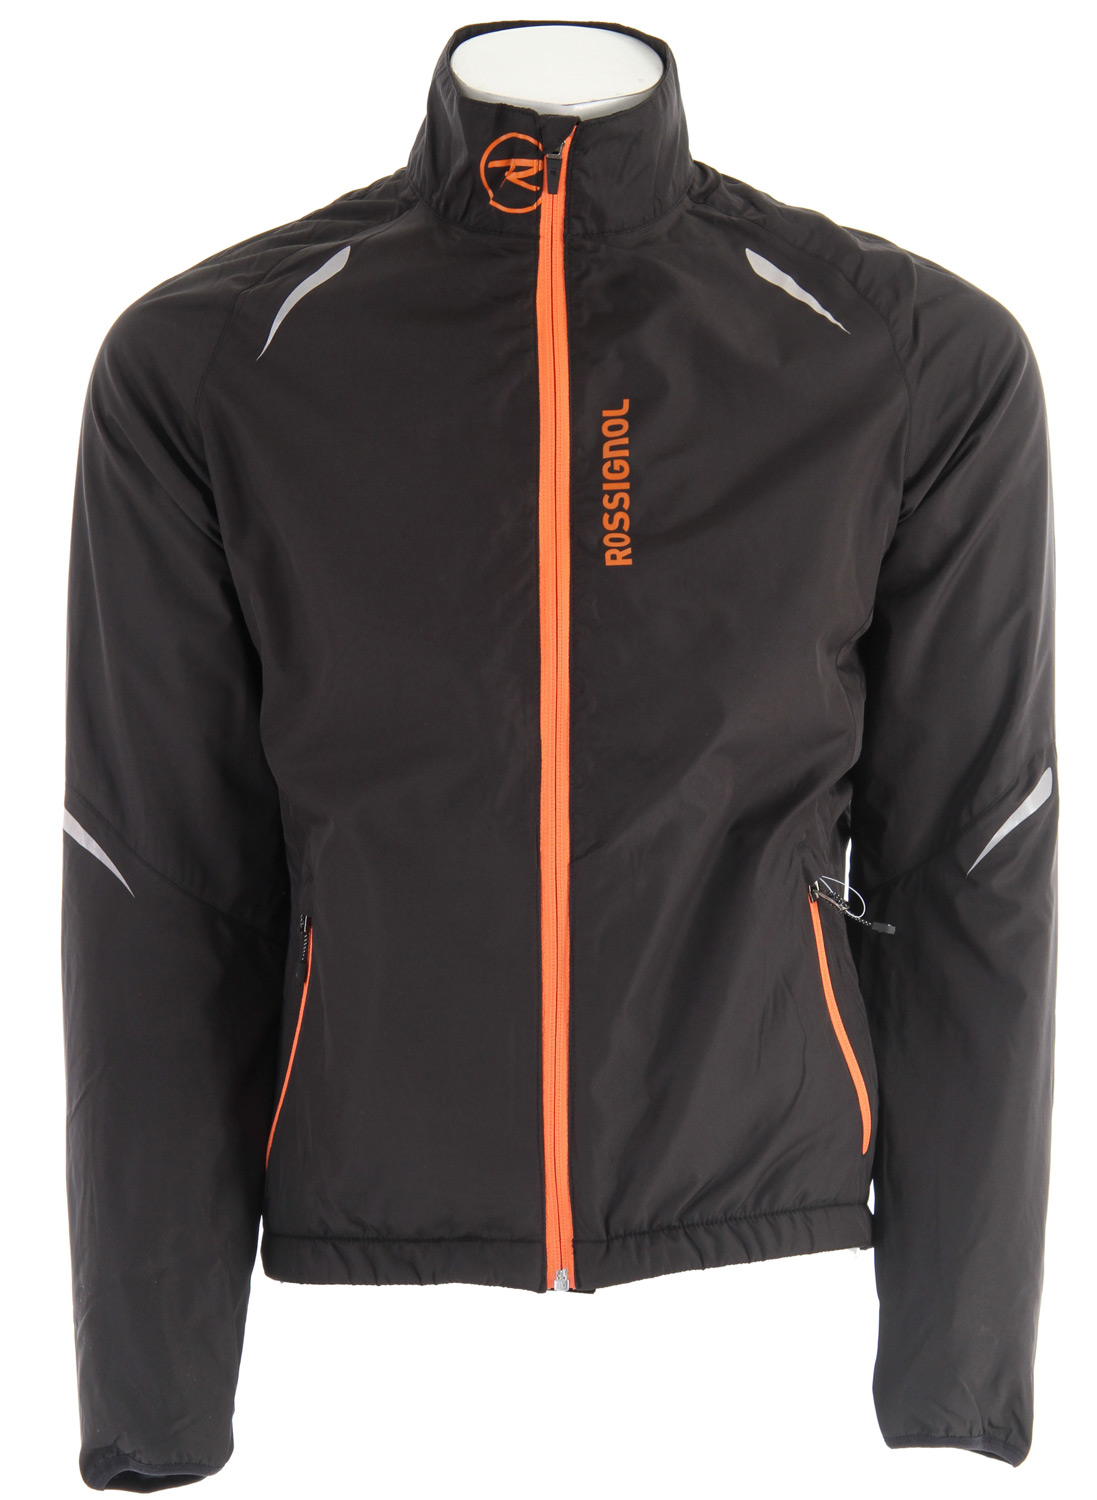 Ski Cold winter outings demand an active jacket that'll warm you up without roasting you and the Rossignol Xium Cross Country Ski Jacket for men achieves just that. For Nordic skiing and running, and similar high-energy activities in lower temps, this is a great grab-and-go layer, ready for handling wind and light precipitation on your ski loop or morning jog through the neighborhood. The DWR coating sheds water while the soft, brushed lining and warm stretch back lend just the right amount of warmth. The snug lycra cuffs and elastic waist with anti-slip rubber help banish the cold.  R-Wind/R-Warm Stretch   100% Polyester - 87% Polyester/13% Elastane   Weight: 63g/m2 - 240 g/m2   Finish: DWR - Windproof - Brushed inside   Lycra binding cuffs   Elastic waist adjustment with anti slip rubber   Warm stretch back   Reflective prints   Large back pockets - $77.95